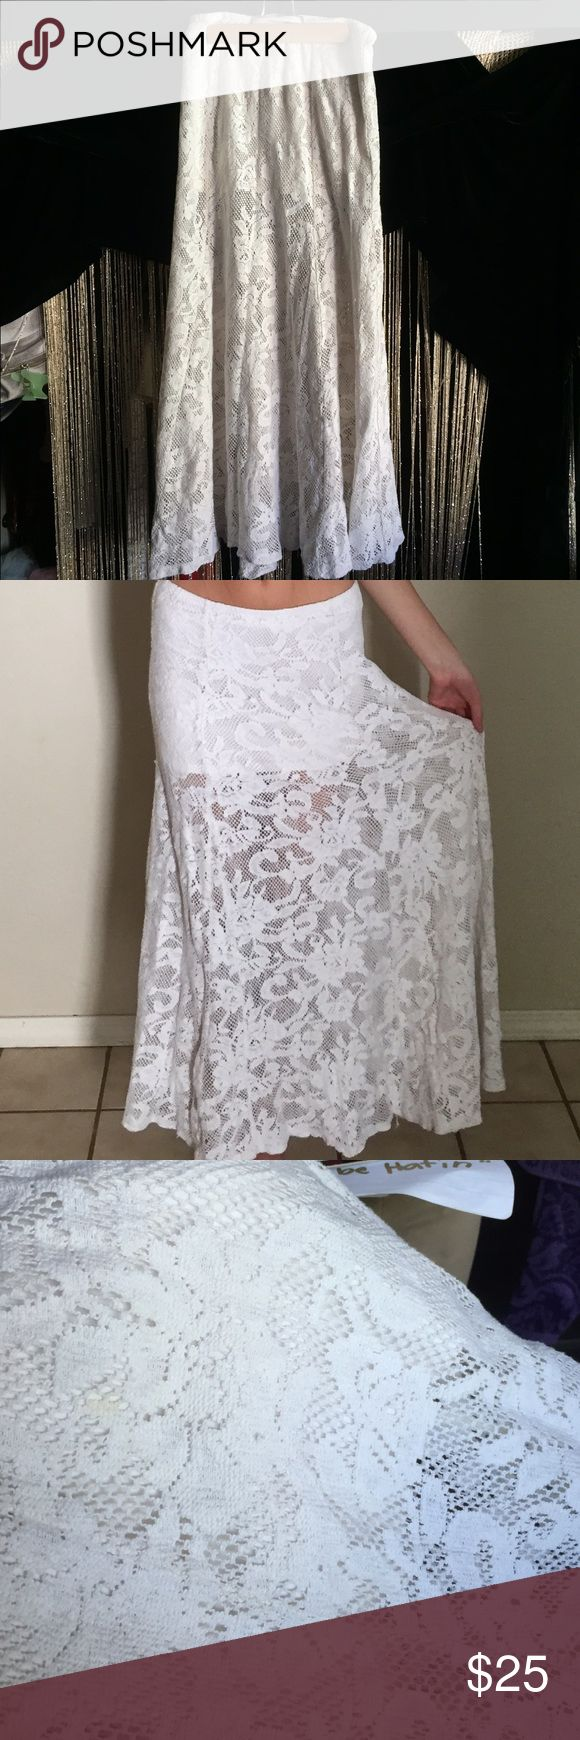 Lace maxi skirt Billabong white net see through skirt over a white mini skirt. It has one small stain that's shown in the 3rd picture that can be easily bleached out Billabong Skirts Maxi